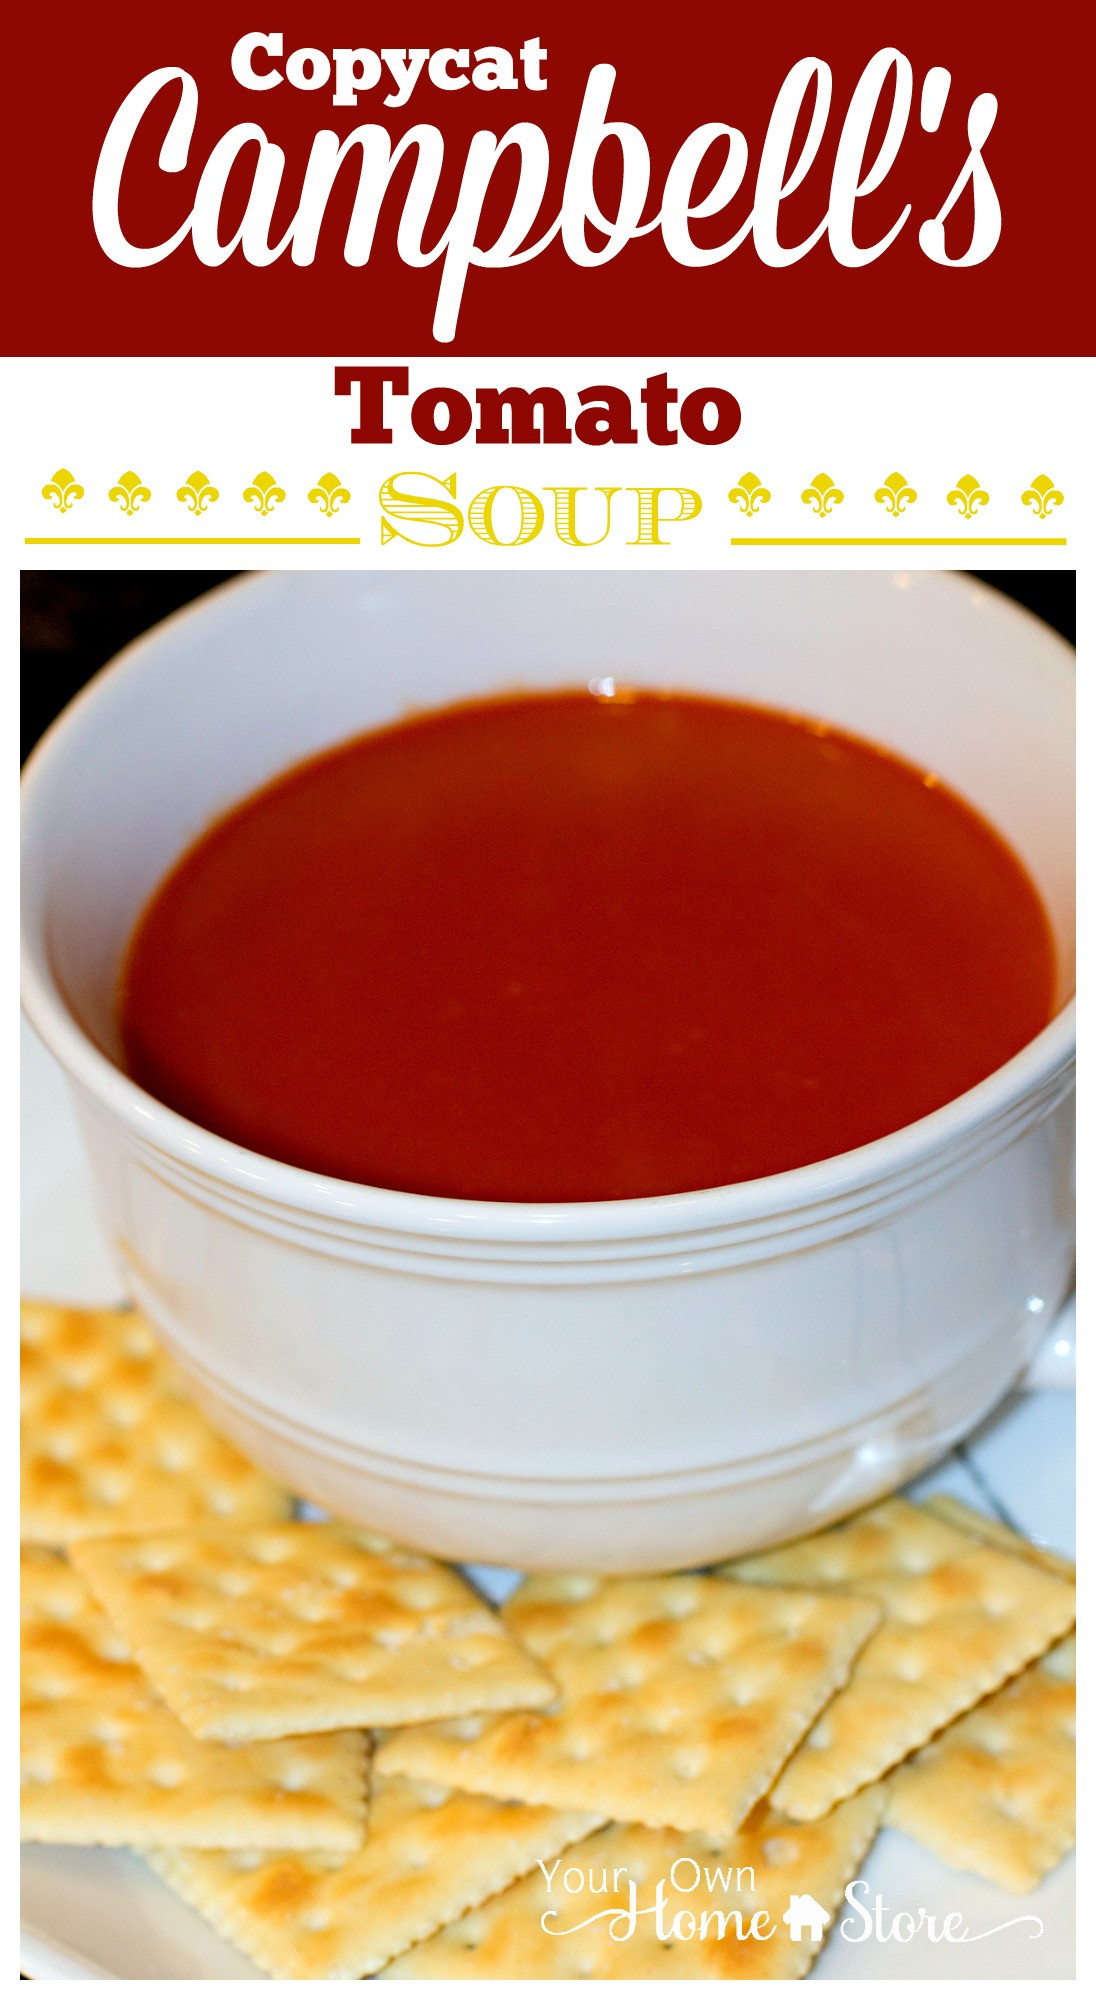 Campbell Tomato Soup  Copycat Cambell s Tomato Soup